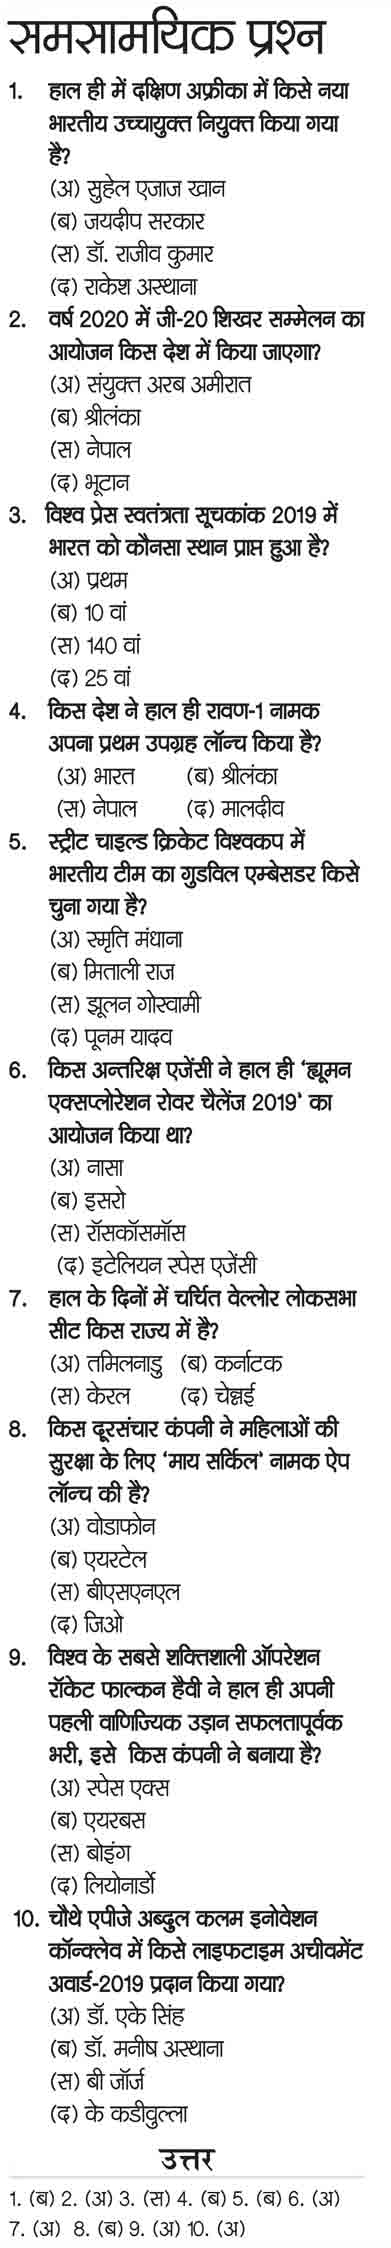 Current affairs and GK for competitive exams